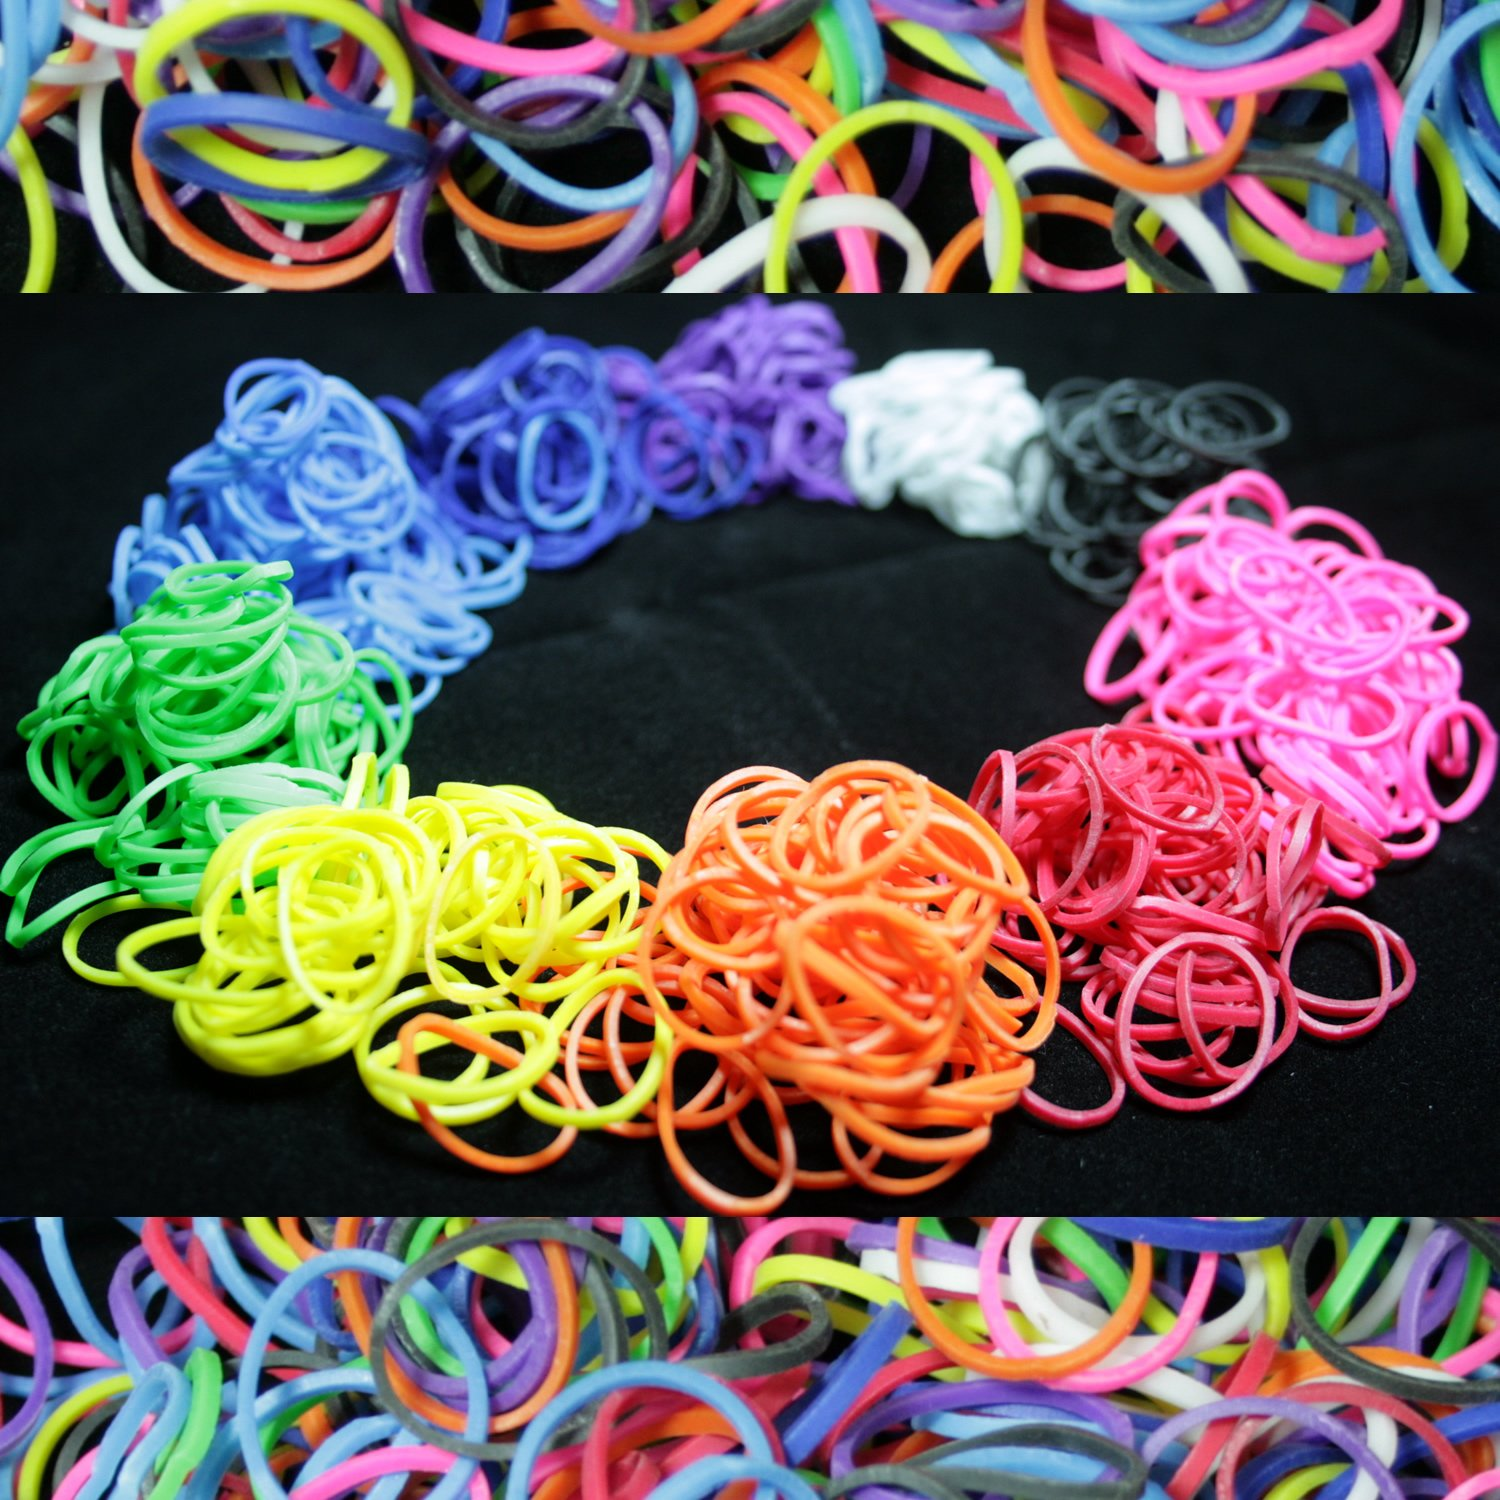 600 Piece Multi-Color Rubber Band and S-Clips Loom Art and Craft ...